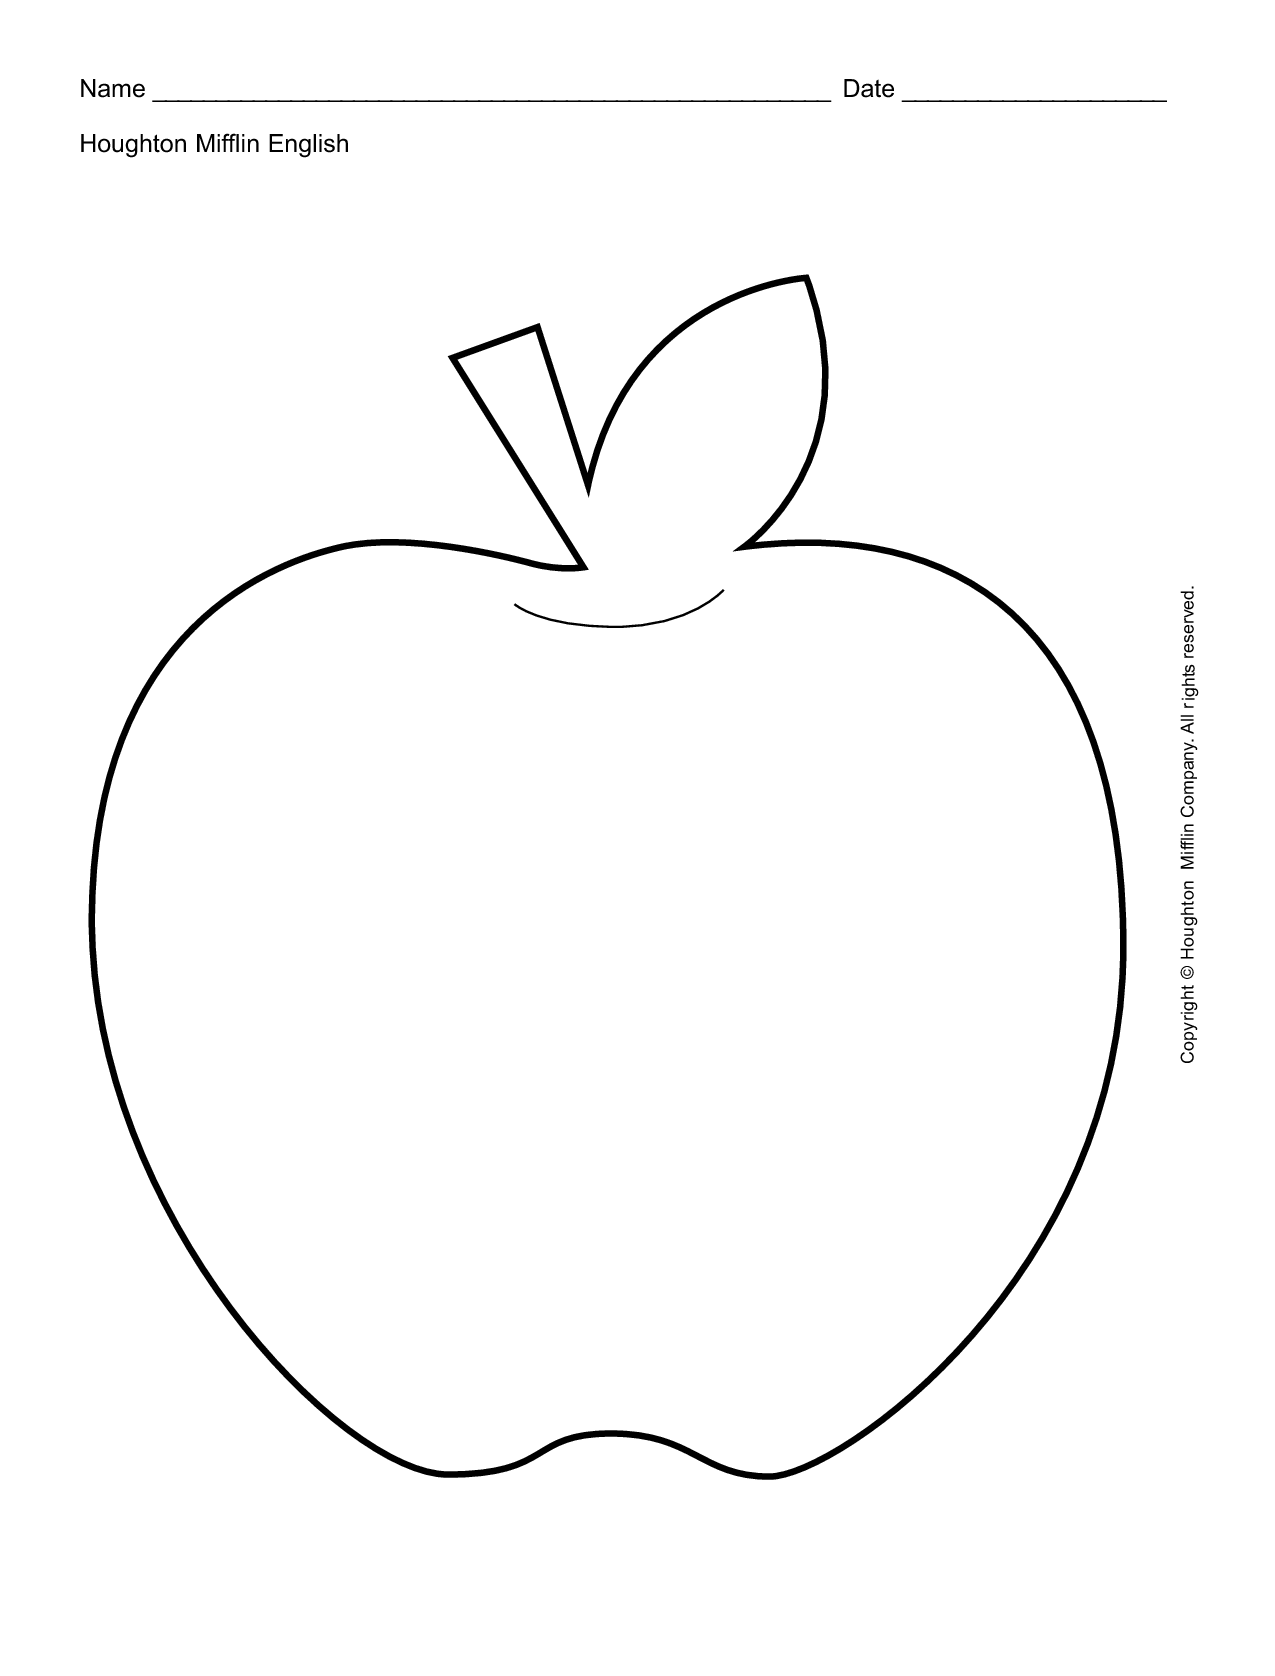 7 Images of Apple Outline Coloring Pages Printables